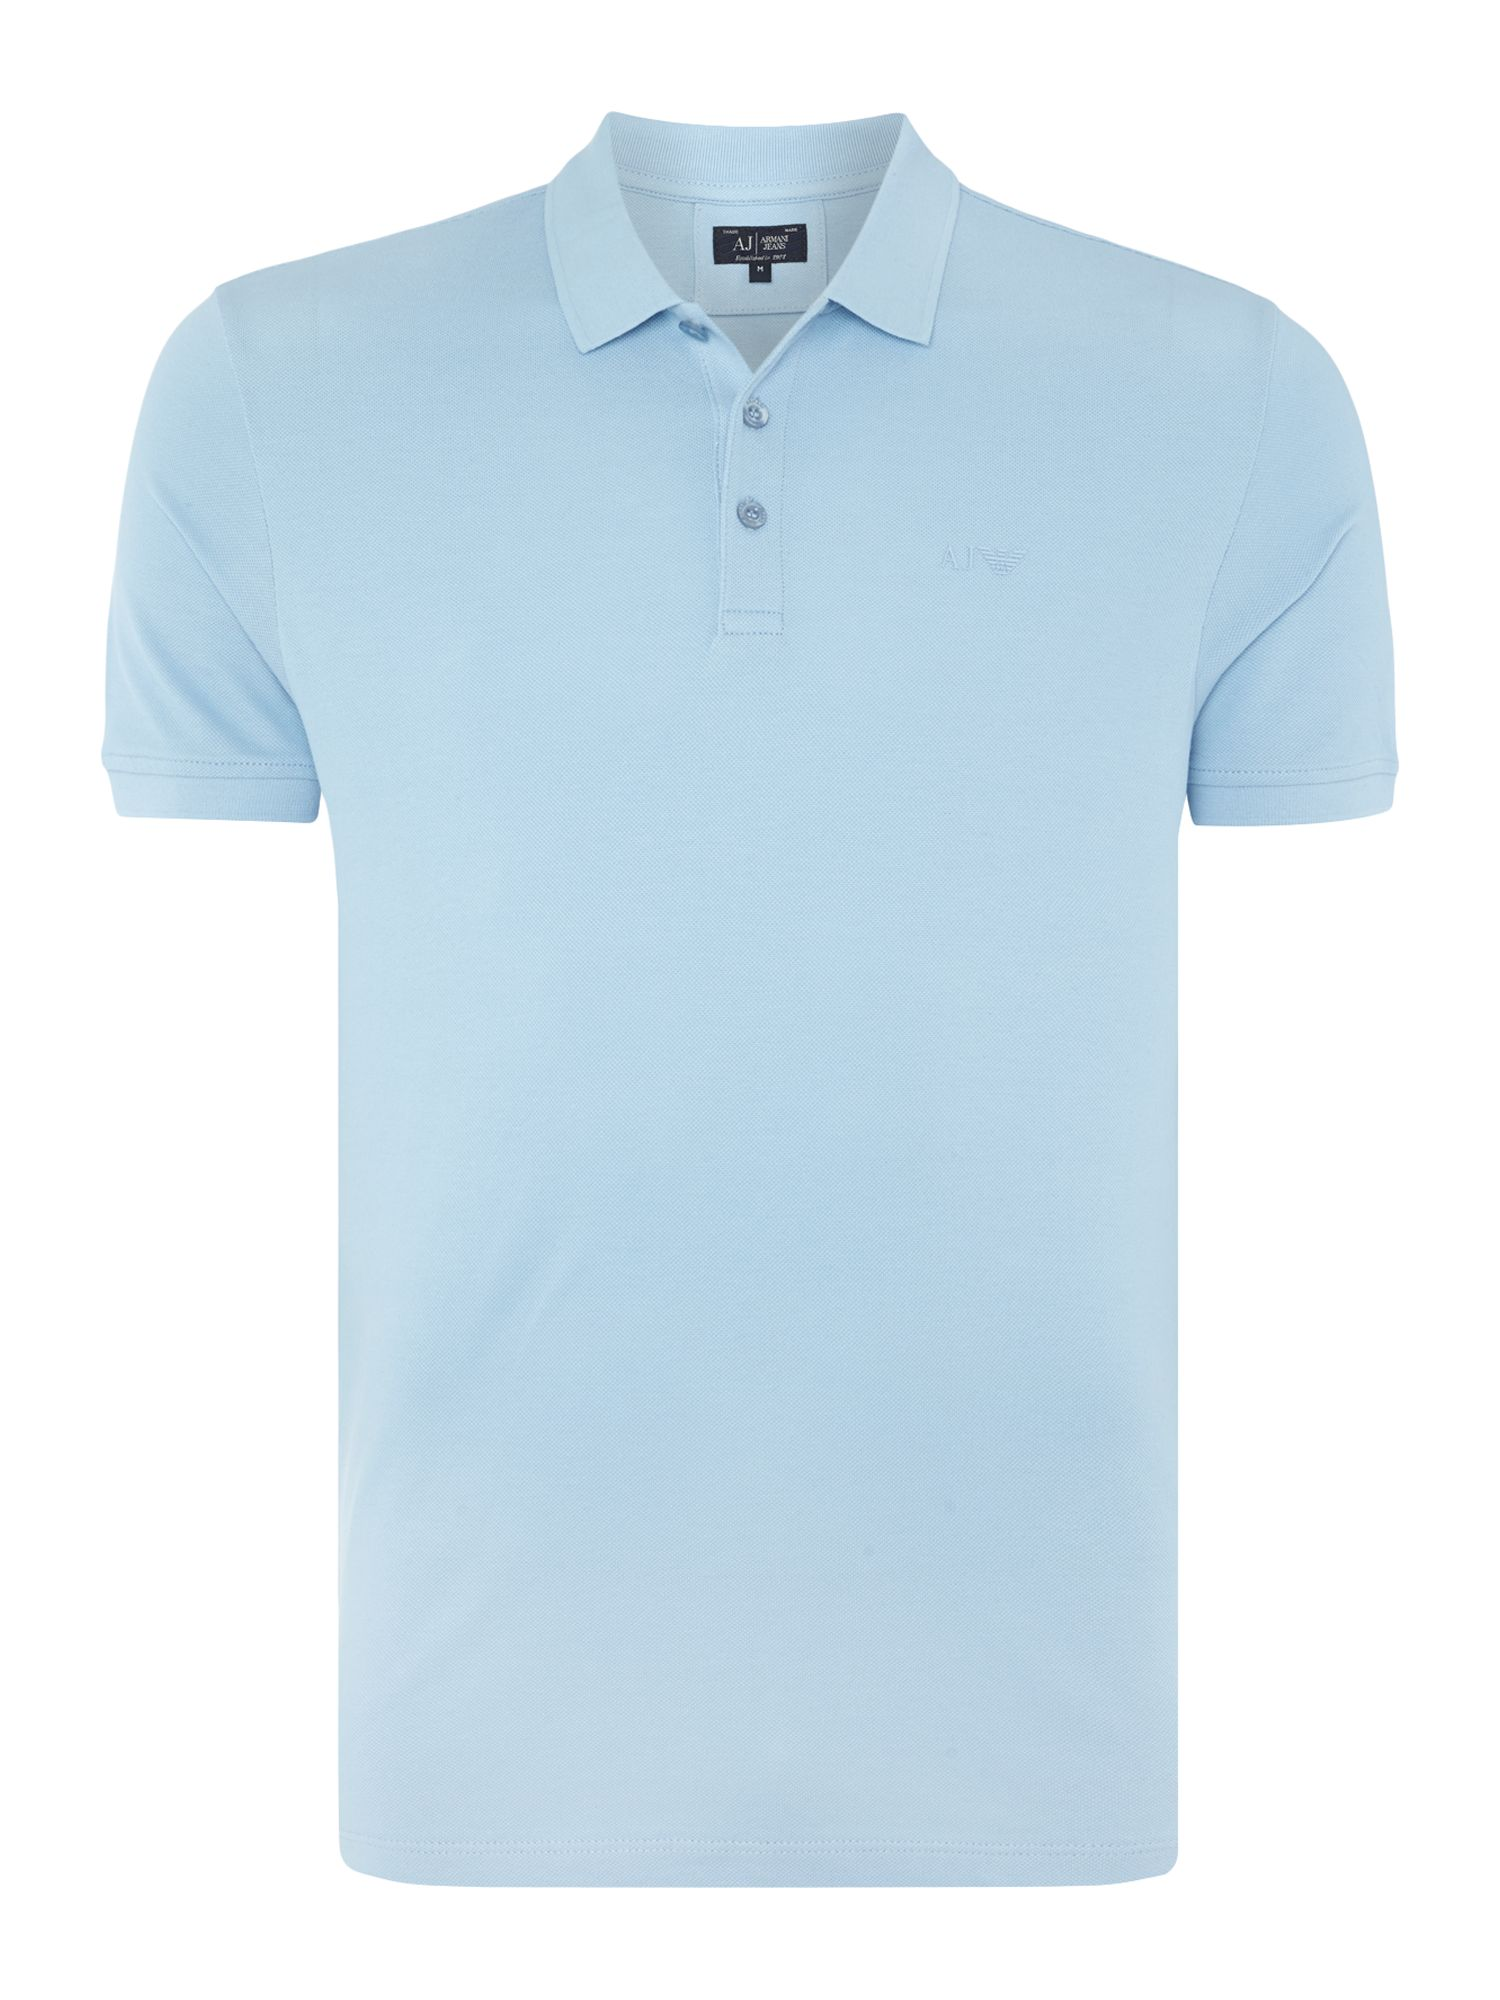 Men's Armani Jeans Regular fit short sleeve logo polo shirt, Sky